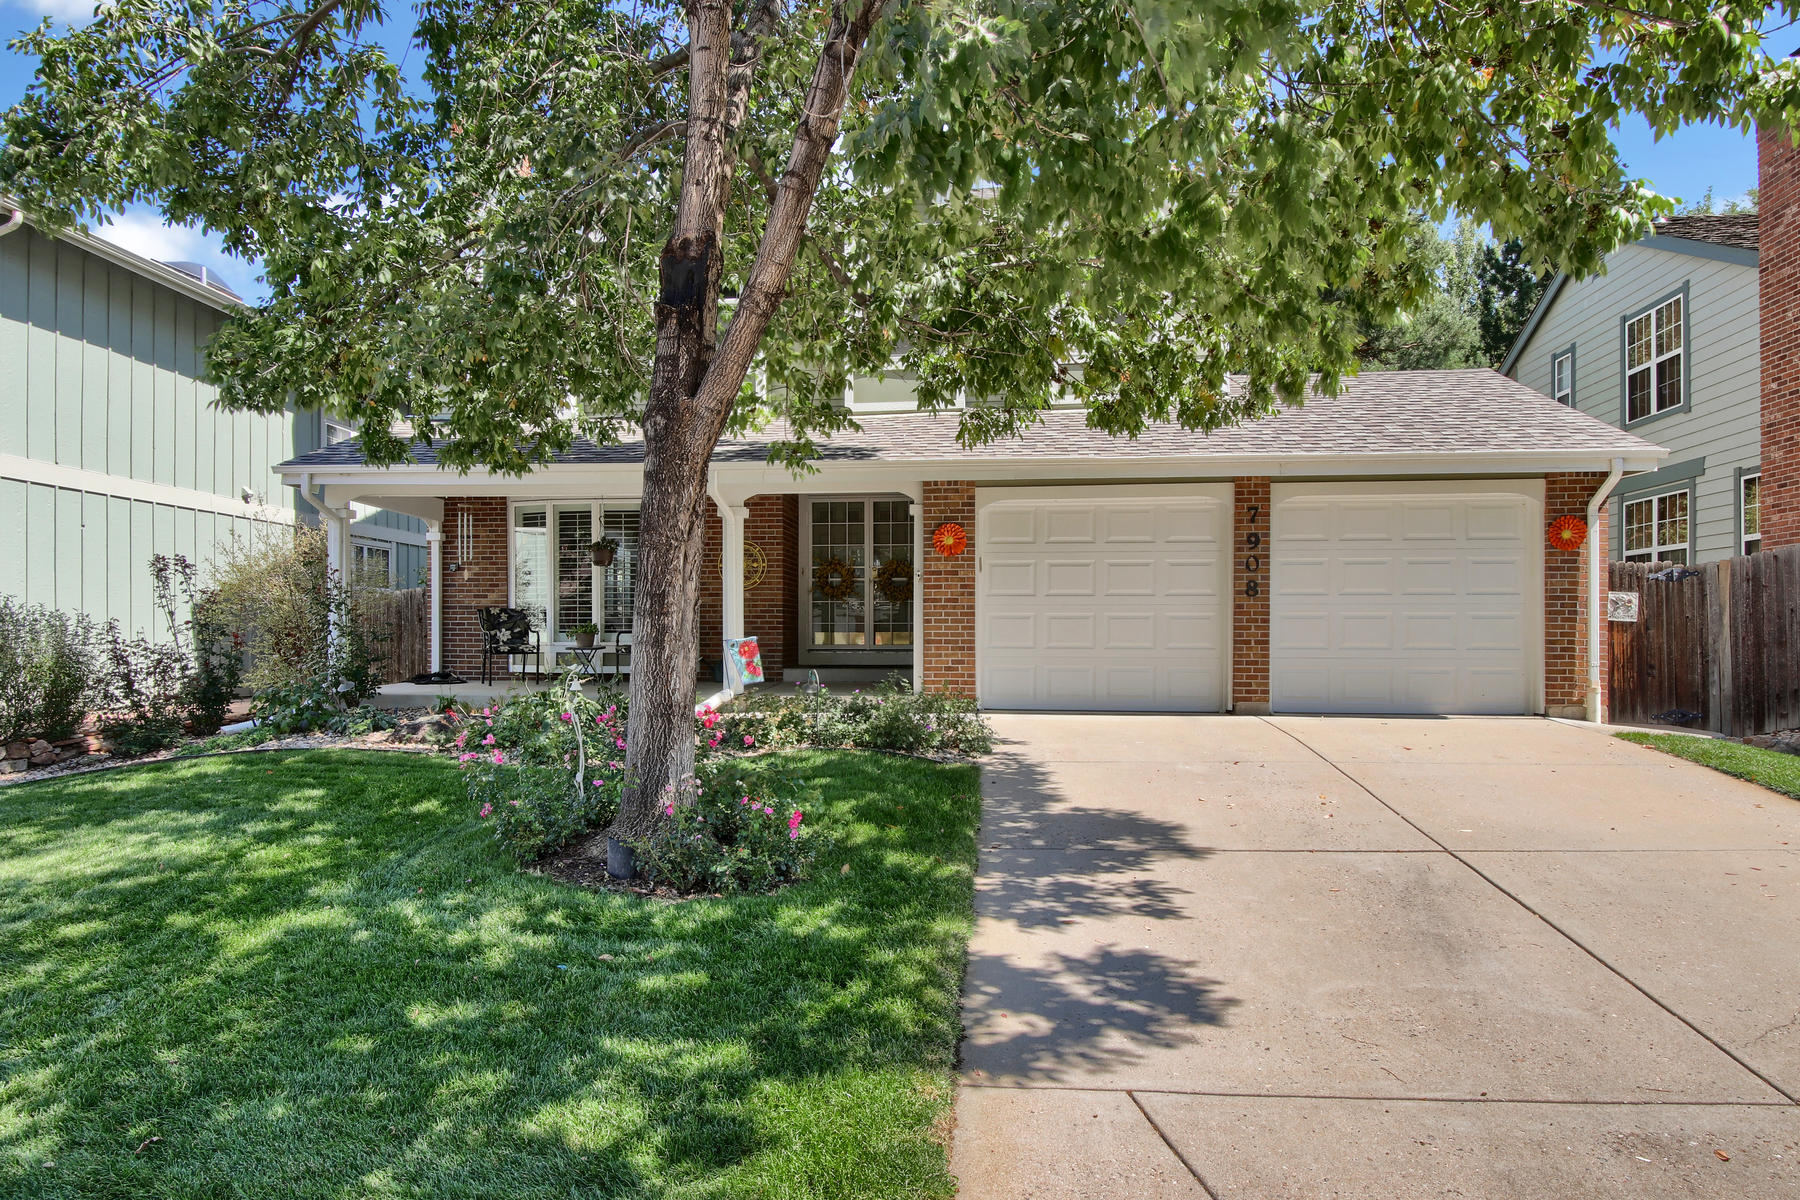 Single Family Home for Active at This two-story home is situated on a desirable street with a charming setting 7908 S Bemis St Littleton, Colorado 80120 United States